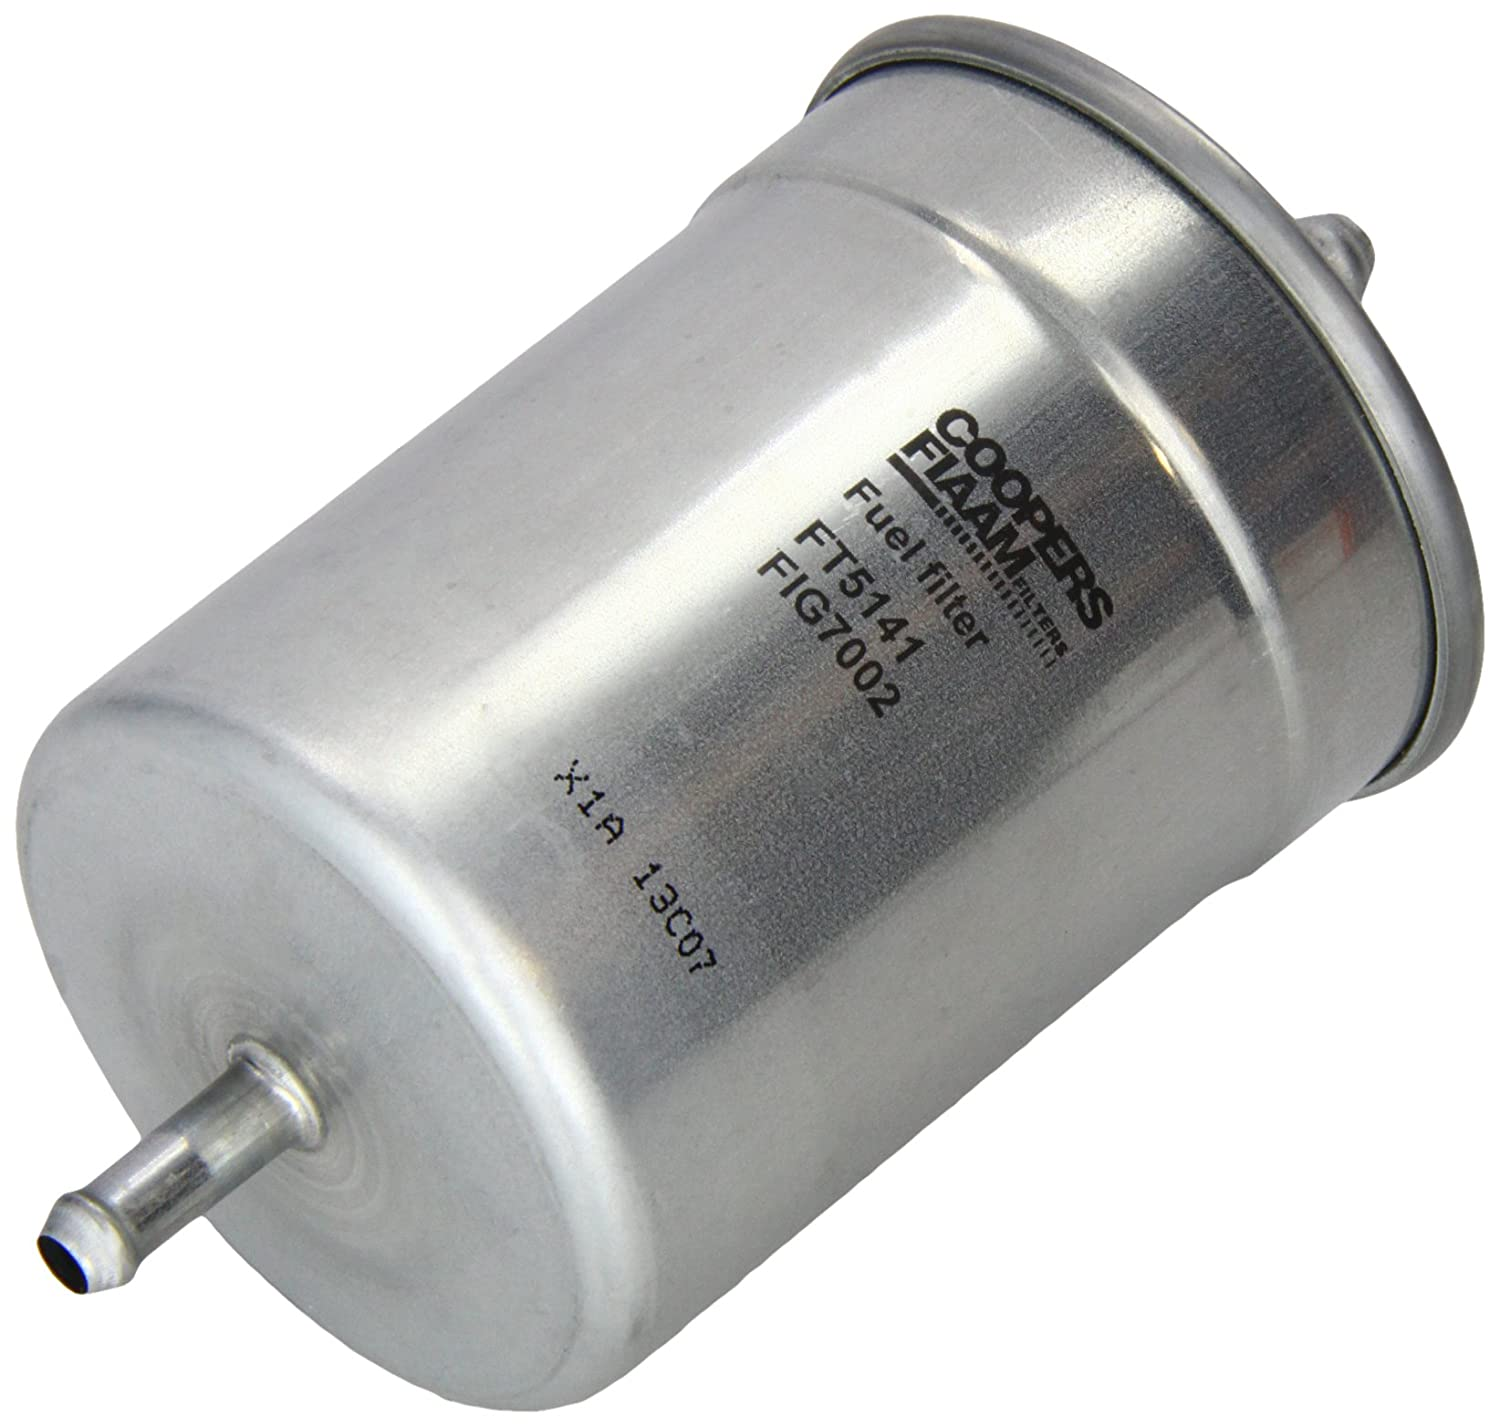 Coopersfiaam Filters Ft5141 Fuel Filter Car Motorbike With An External Amplifier You Need To Supply A Speakers Sp2003